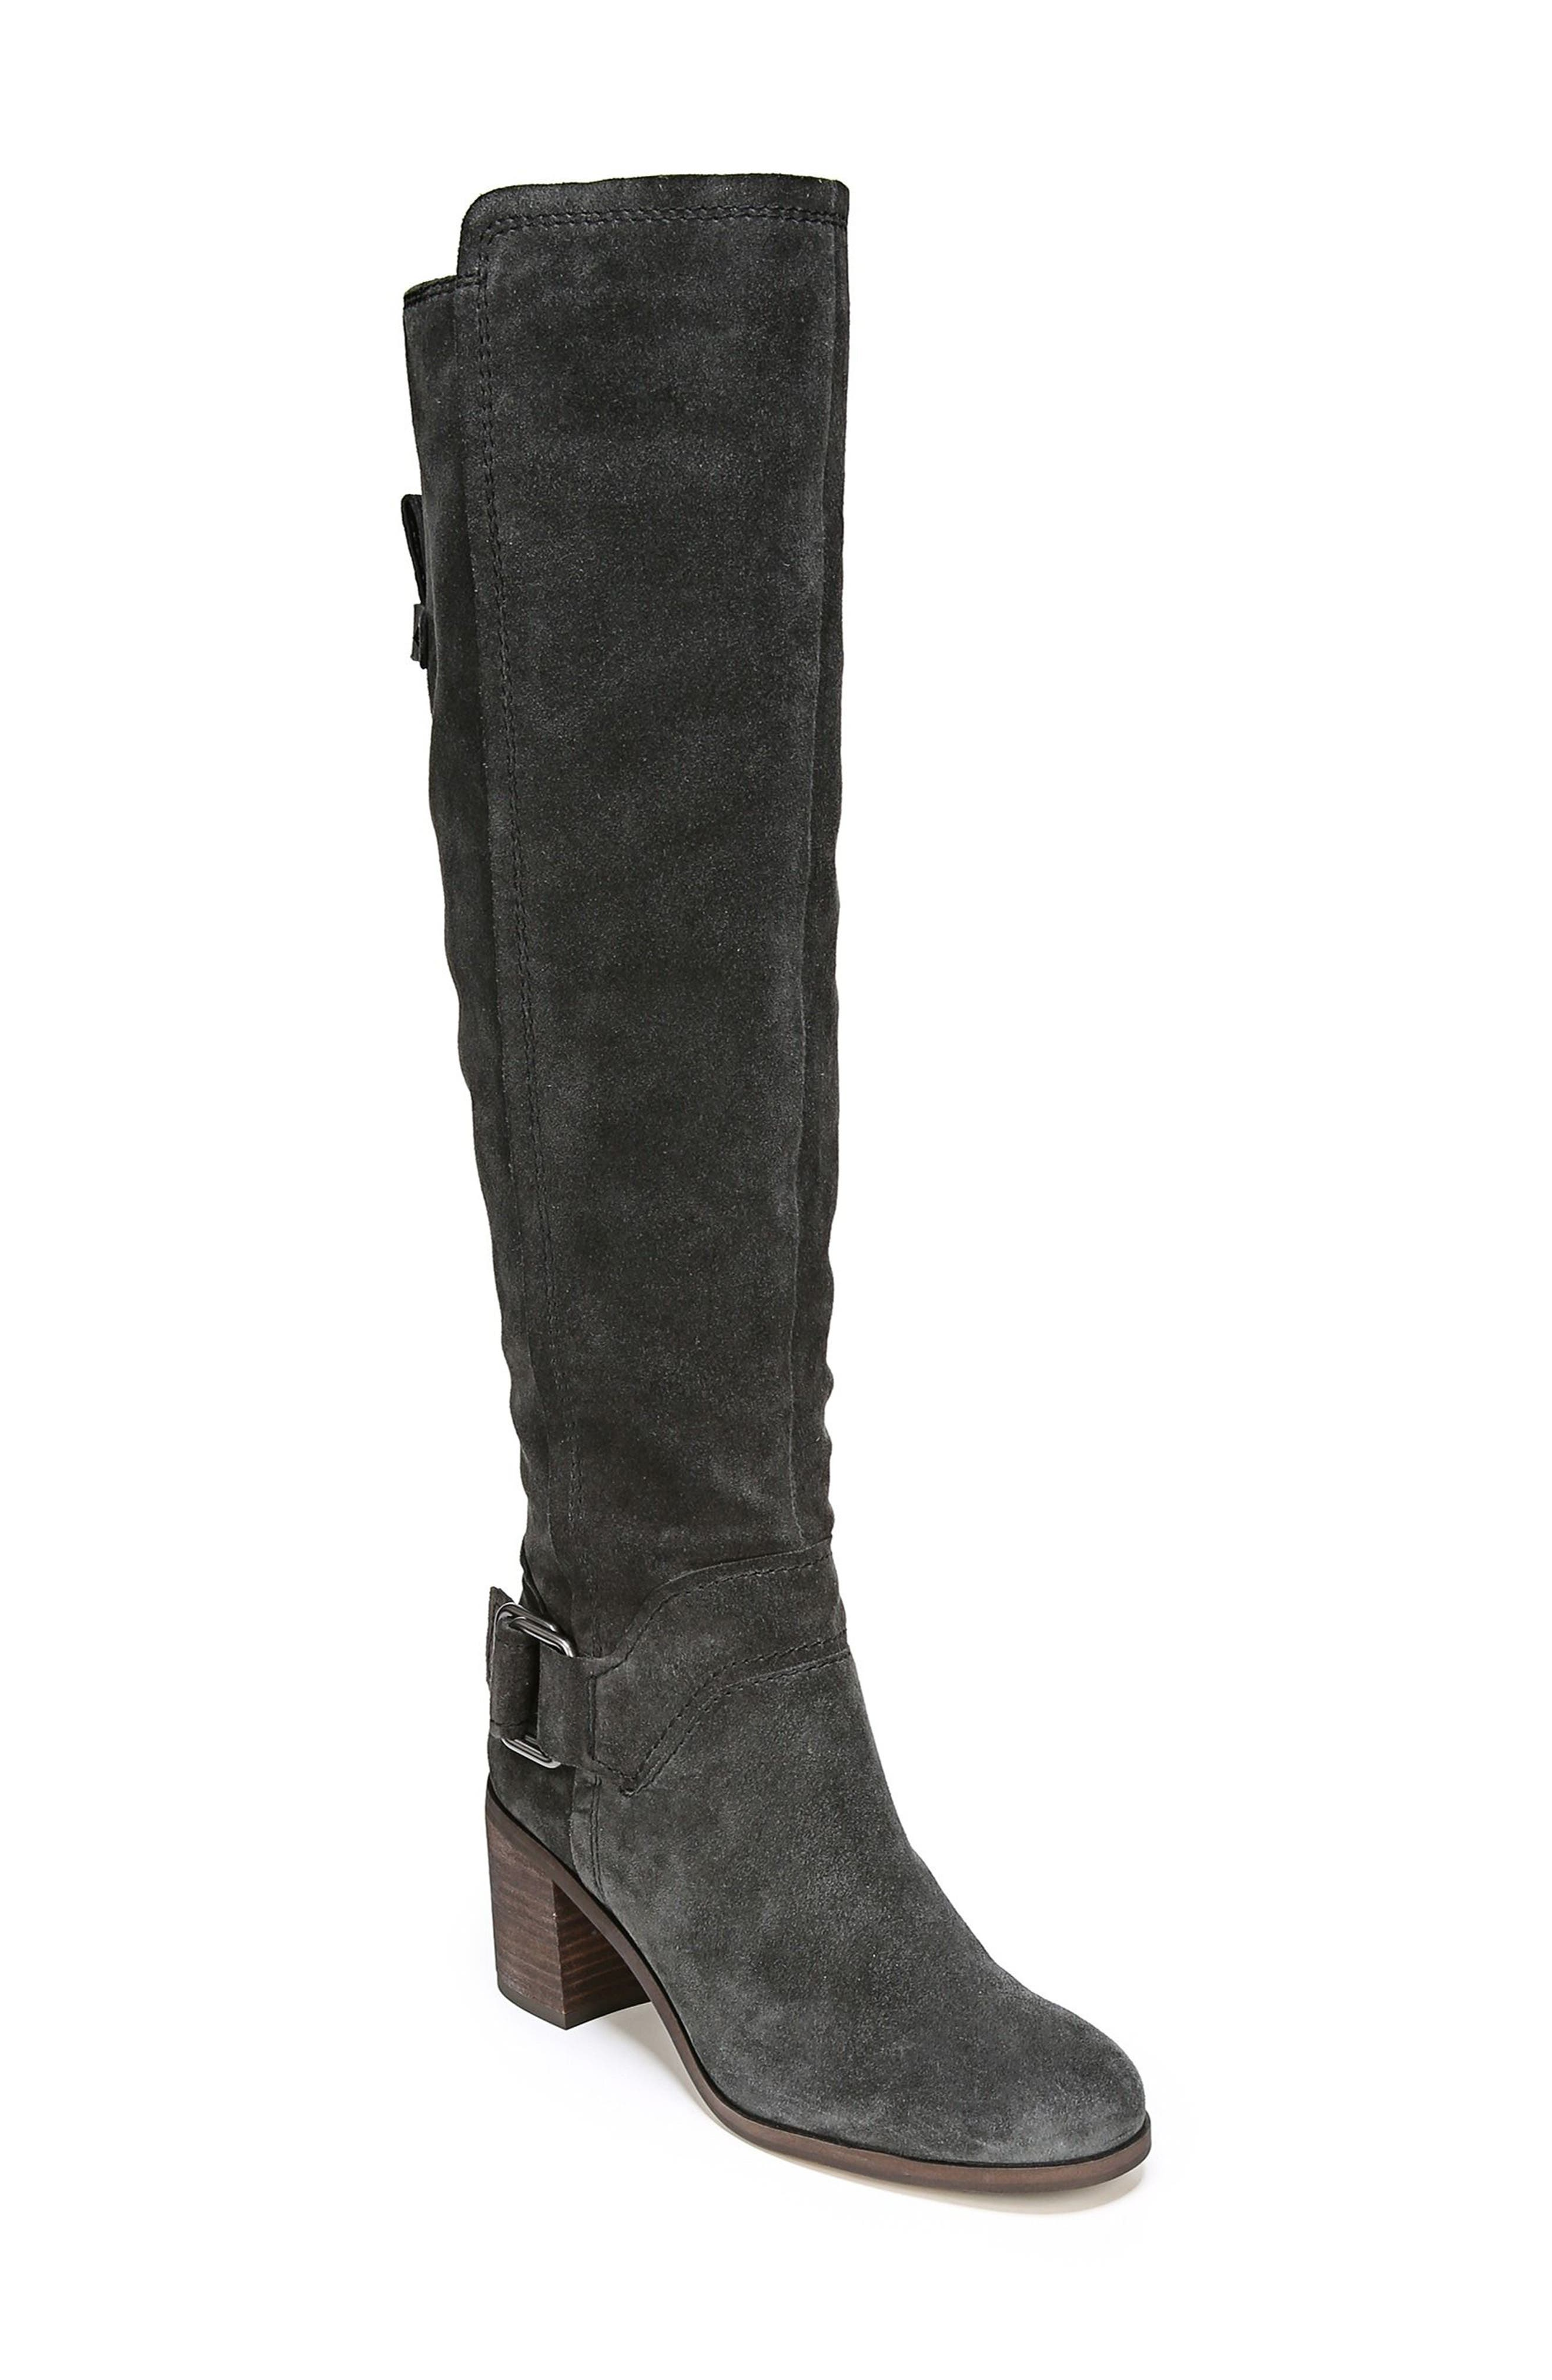 Mystic Knee High Boot,                         Main,                         color, Coal Suede